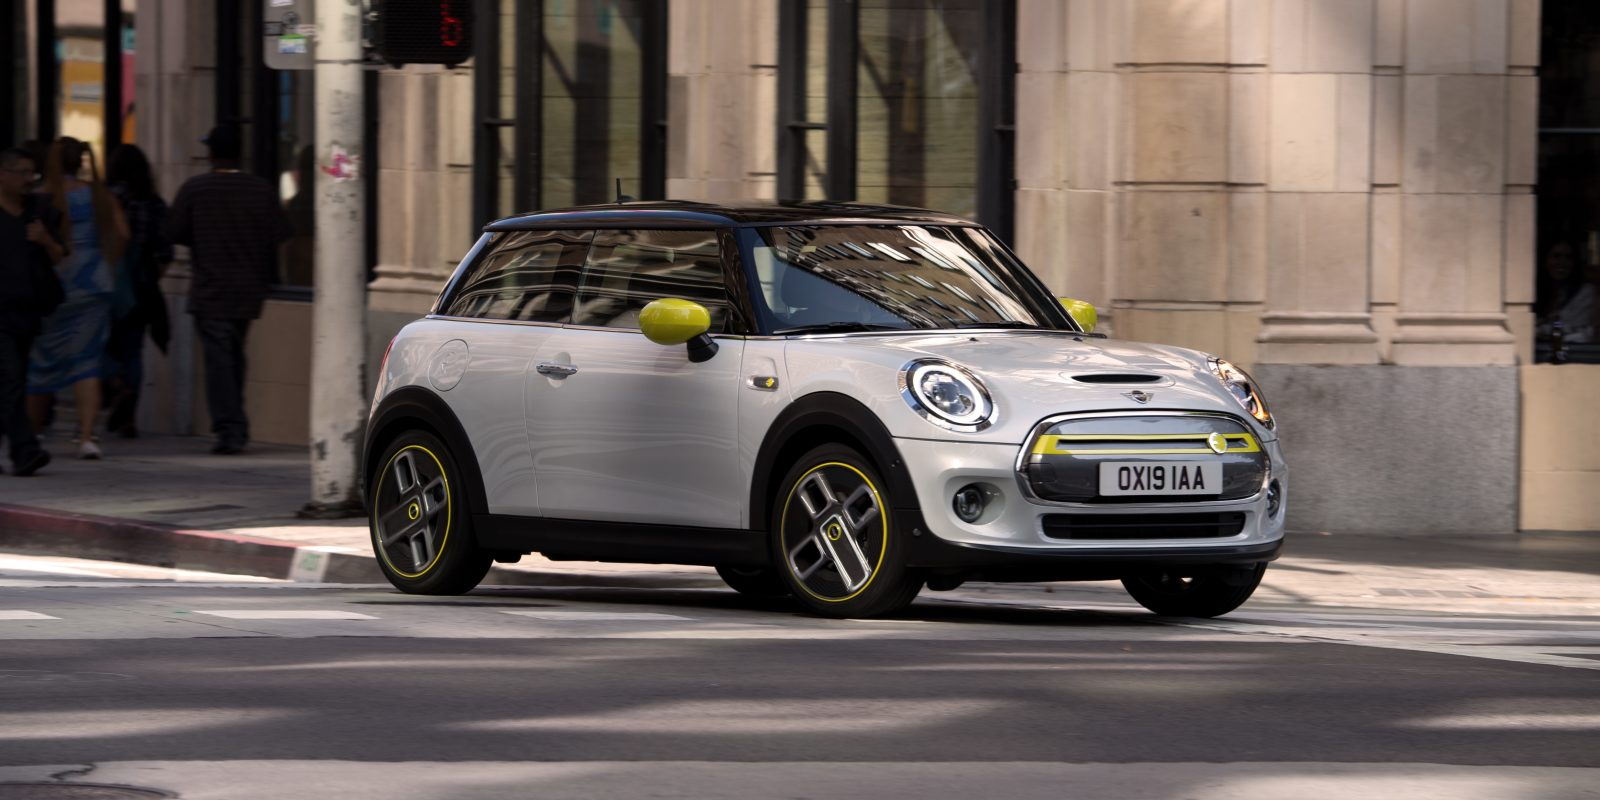 Bmw Received Over 45 000 Reservations For The New All Electric Mini